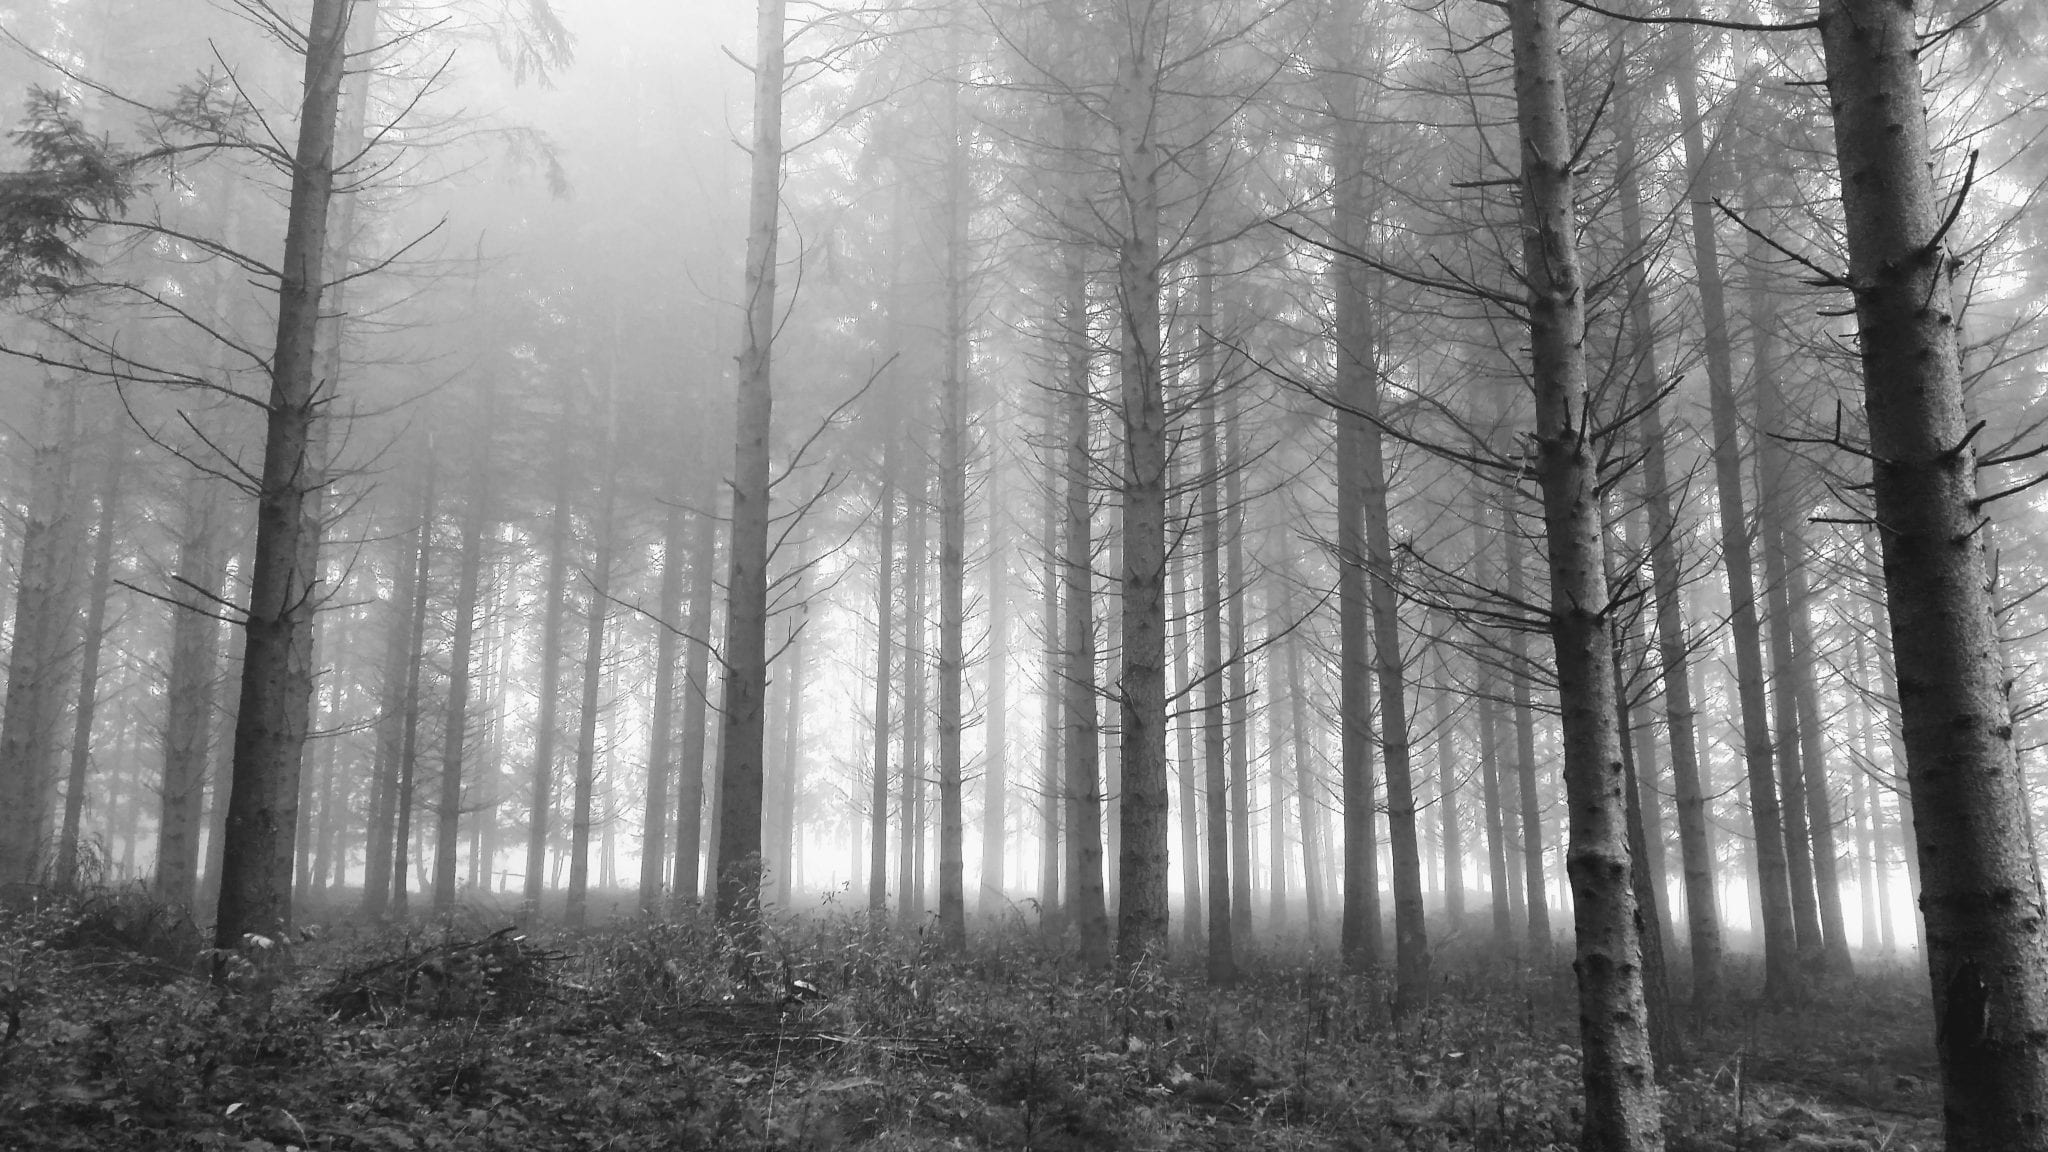 Misty forest in black and white